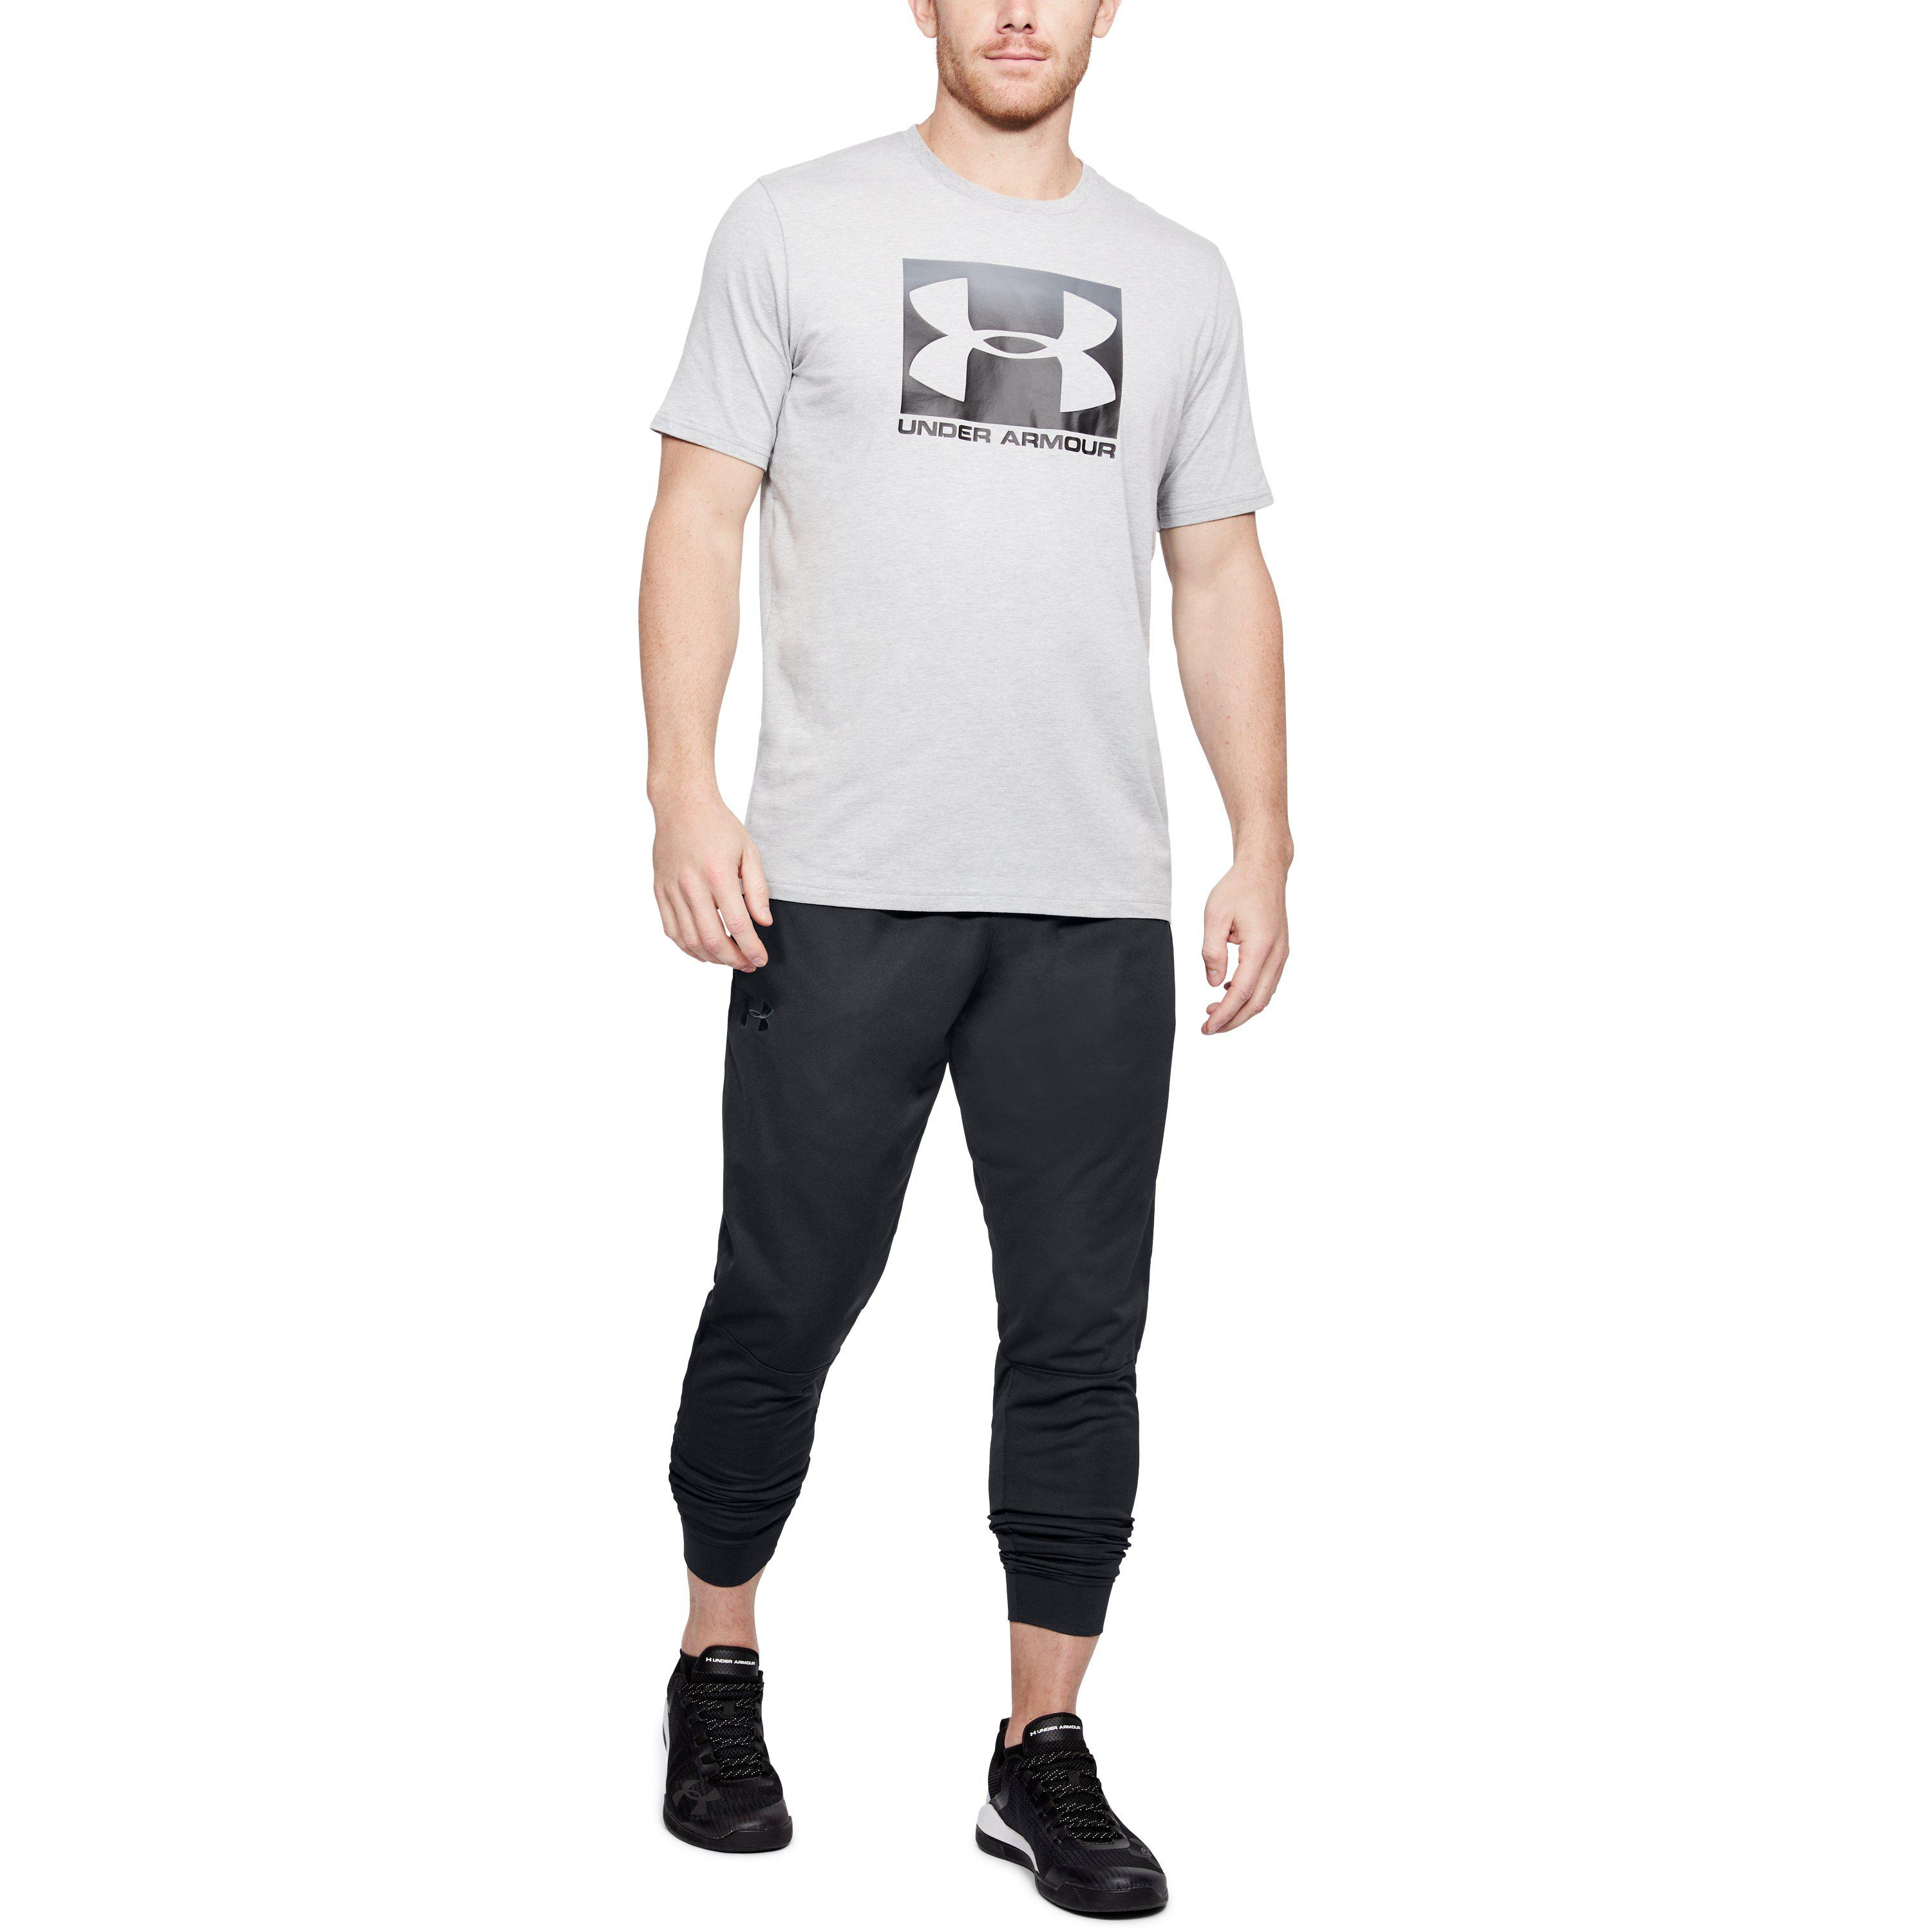 9a2b1d8882 Under Armour Black Men's Ua Sportstyle Pique Joggers for men